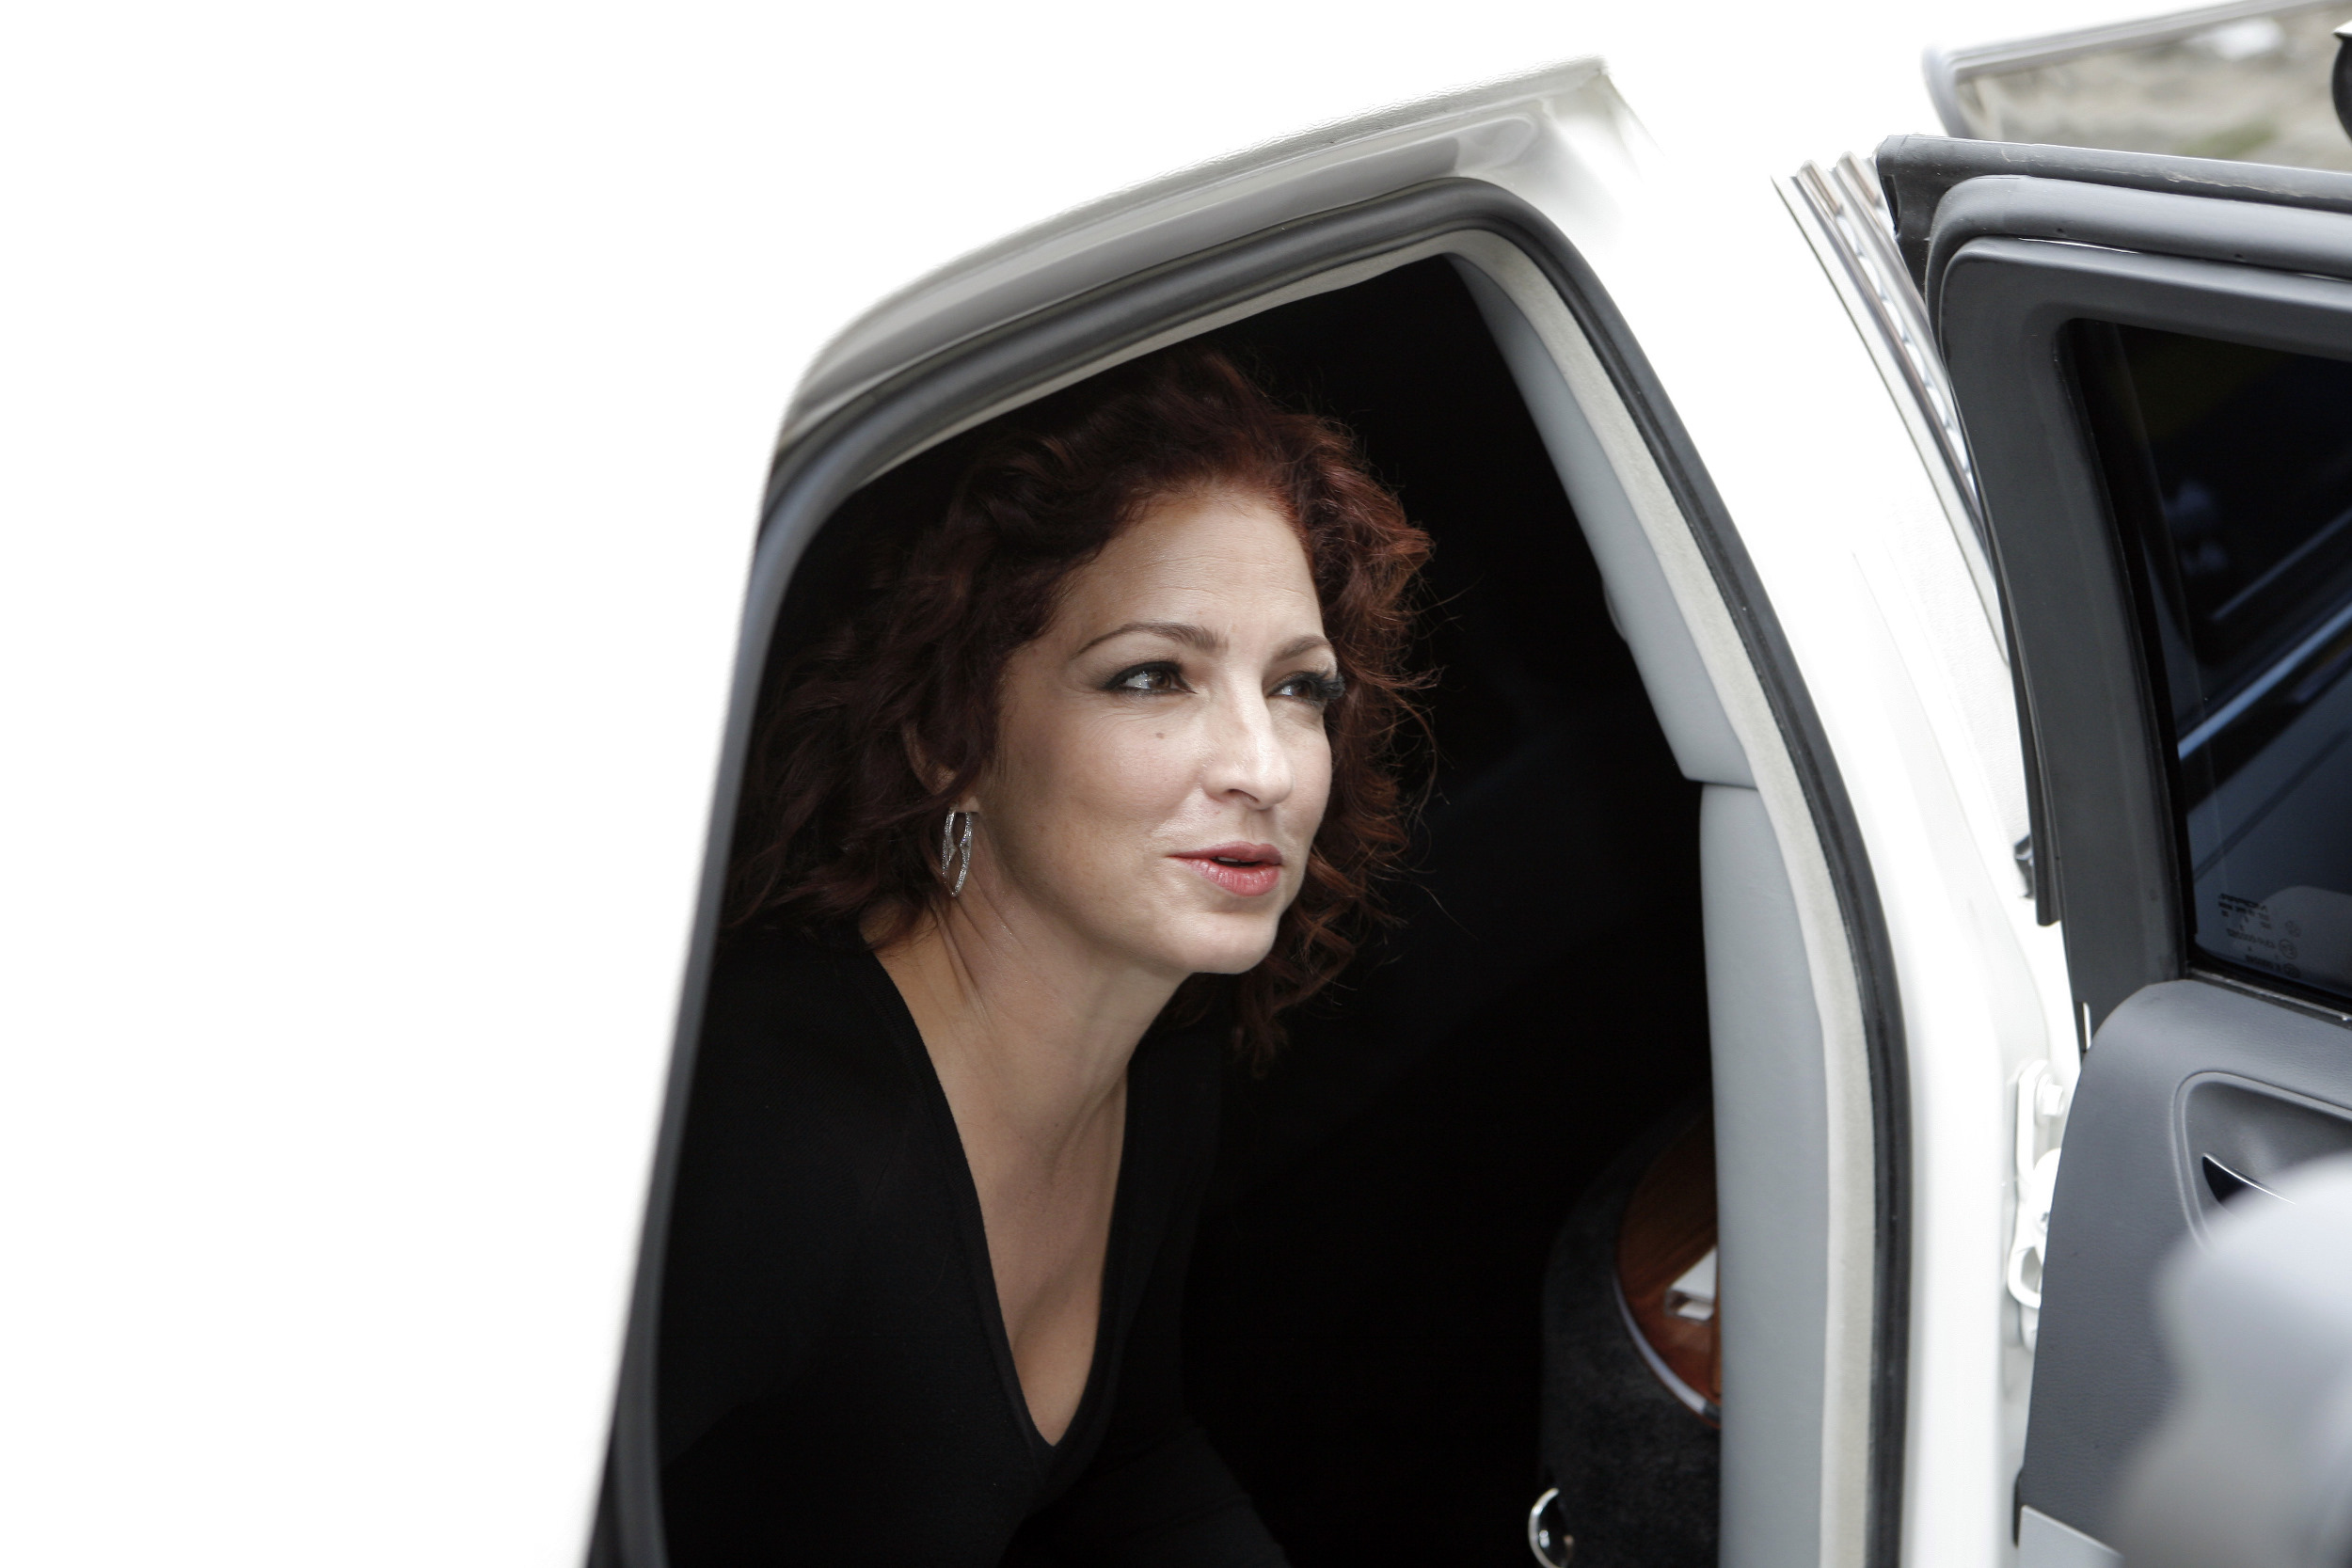 Rotterdam, Coolsingel, Gloria Estefan, zangeres, singer, Queen of Latin Pop, muziek, music